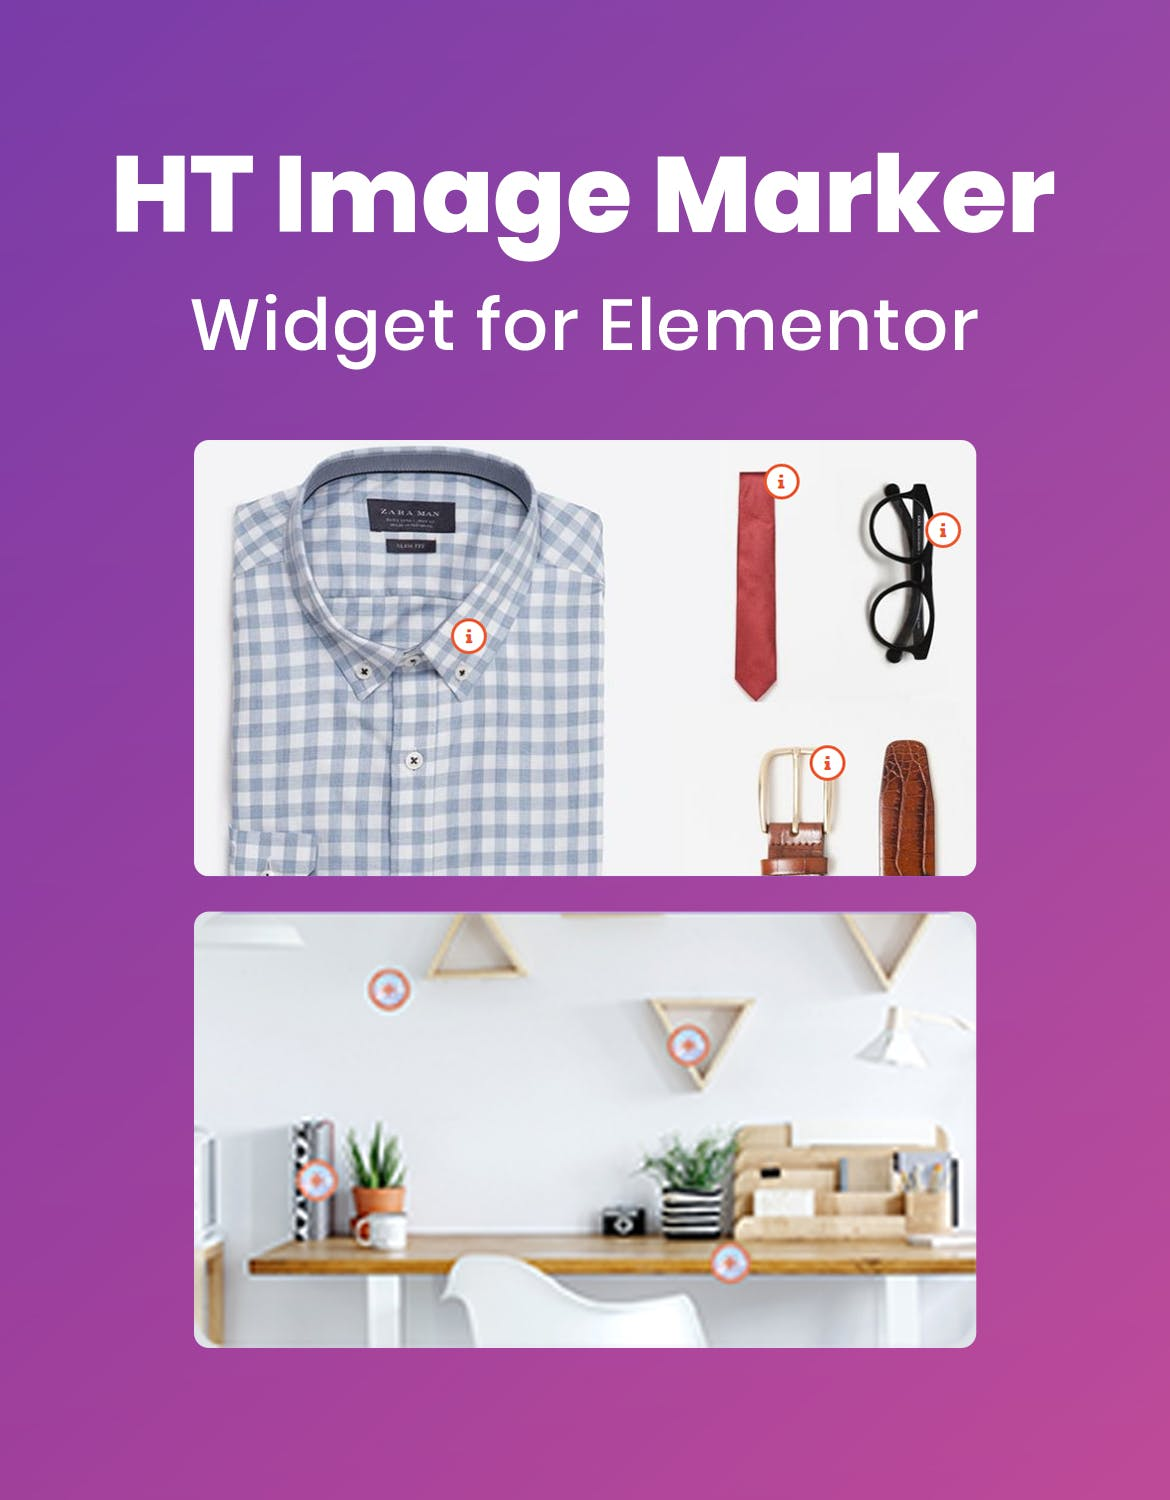 HT Image Marker for Elementor by codecarnival on Envato Elements